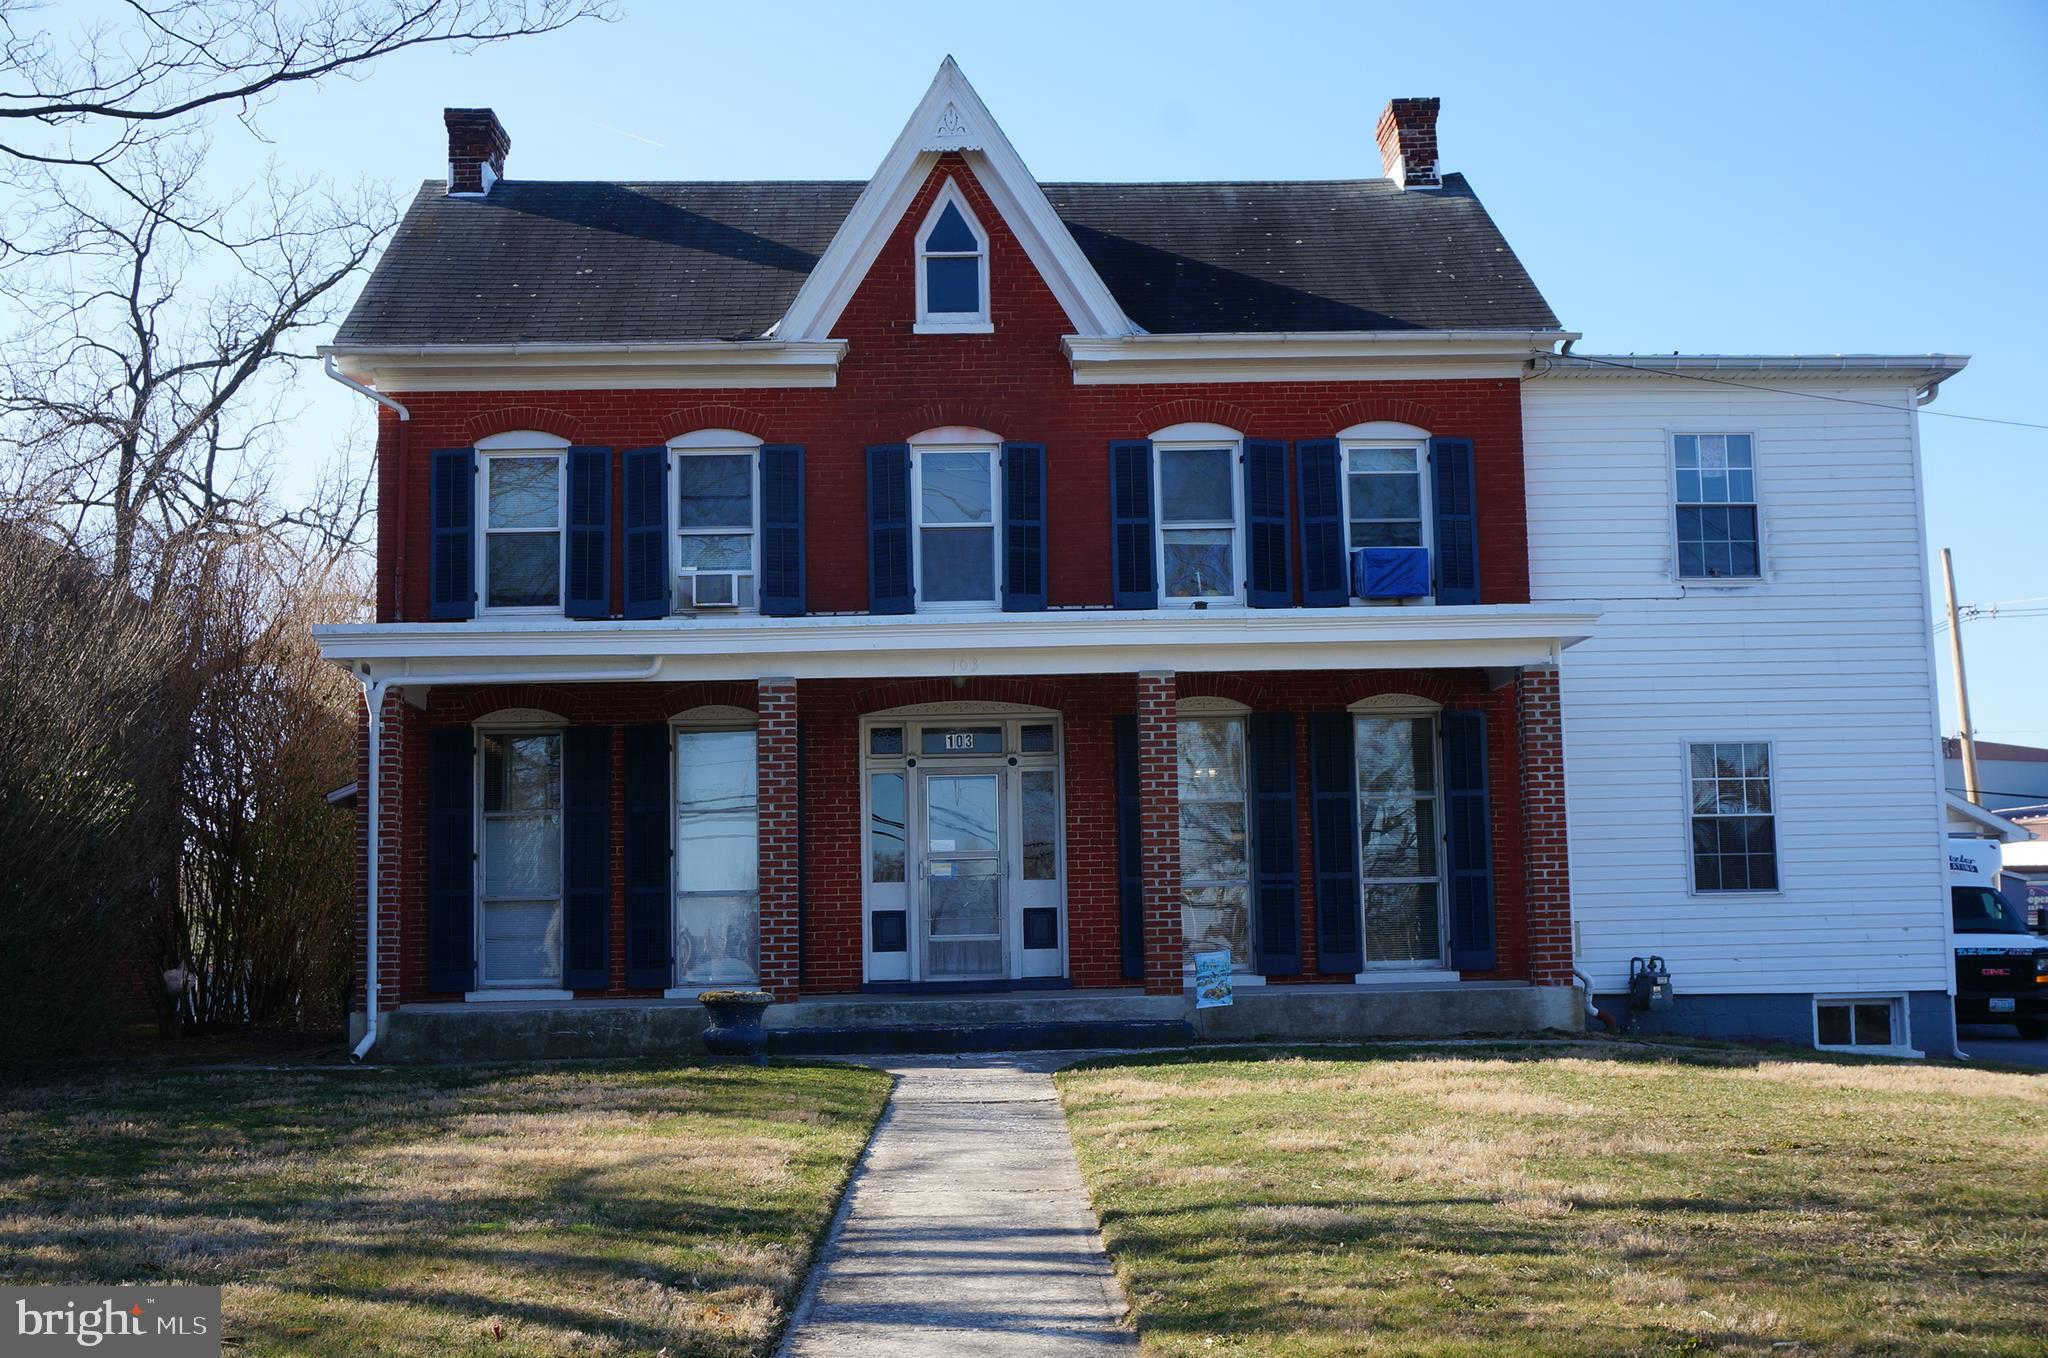 101 - 103 E Howard Street, Hagerstown, MD 21740 now has a new price of $249,000!